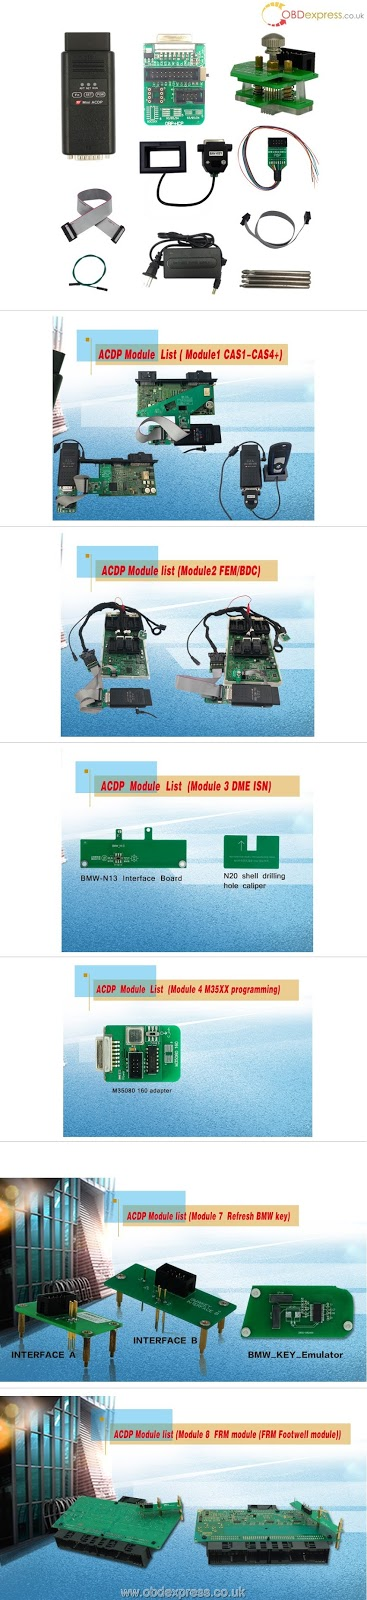 yanhua-acdp-bmw-package